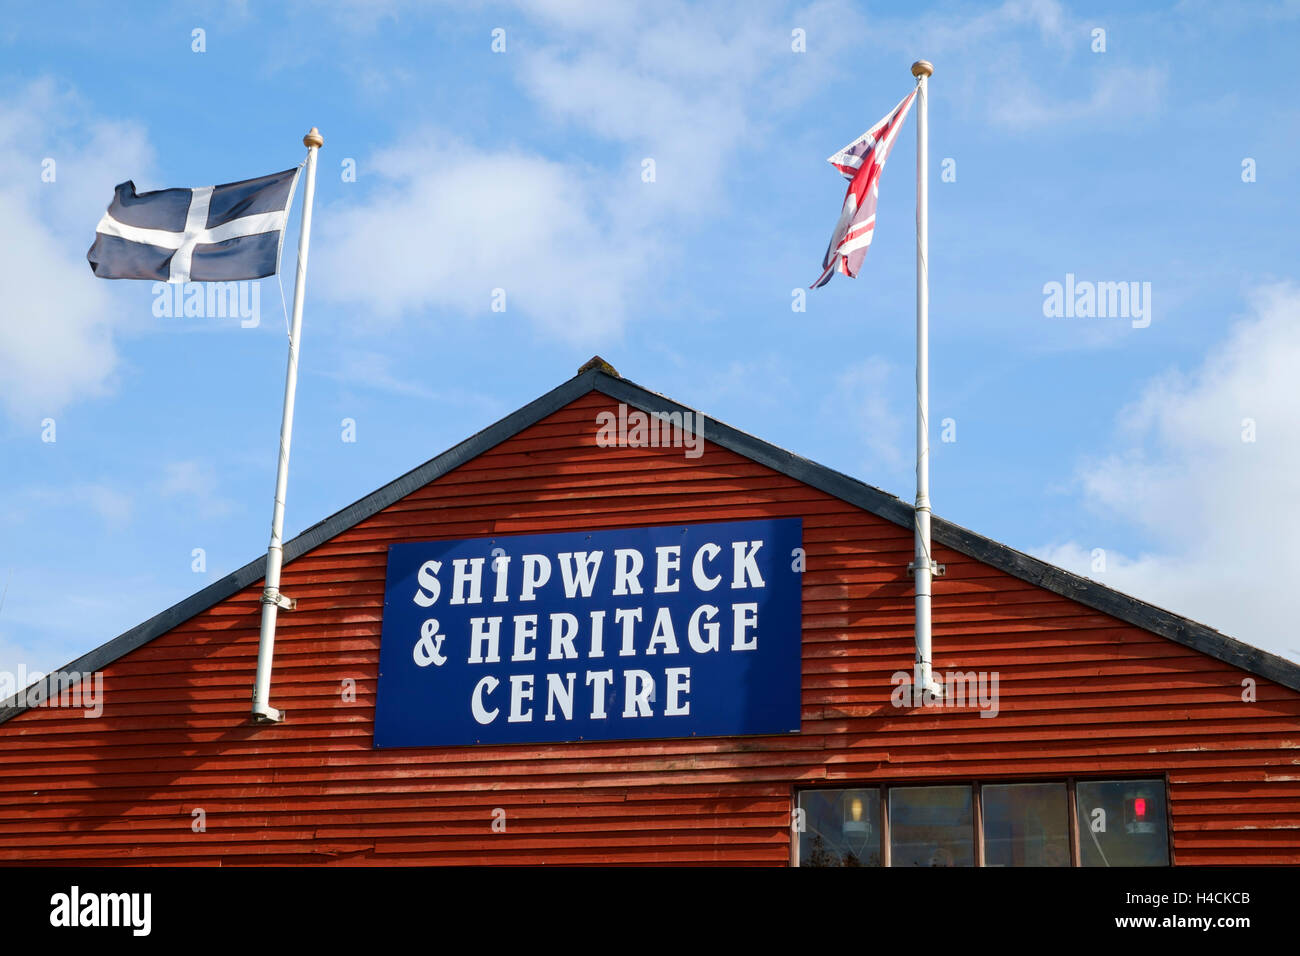 Shipwreck and Heritage Centre, Charlestown, Cornwall, England, UK - Stock Image